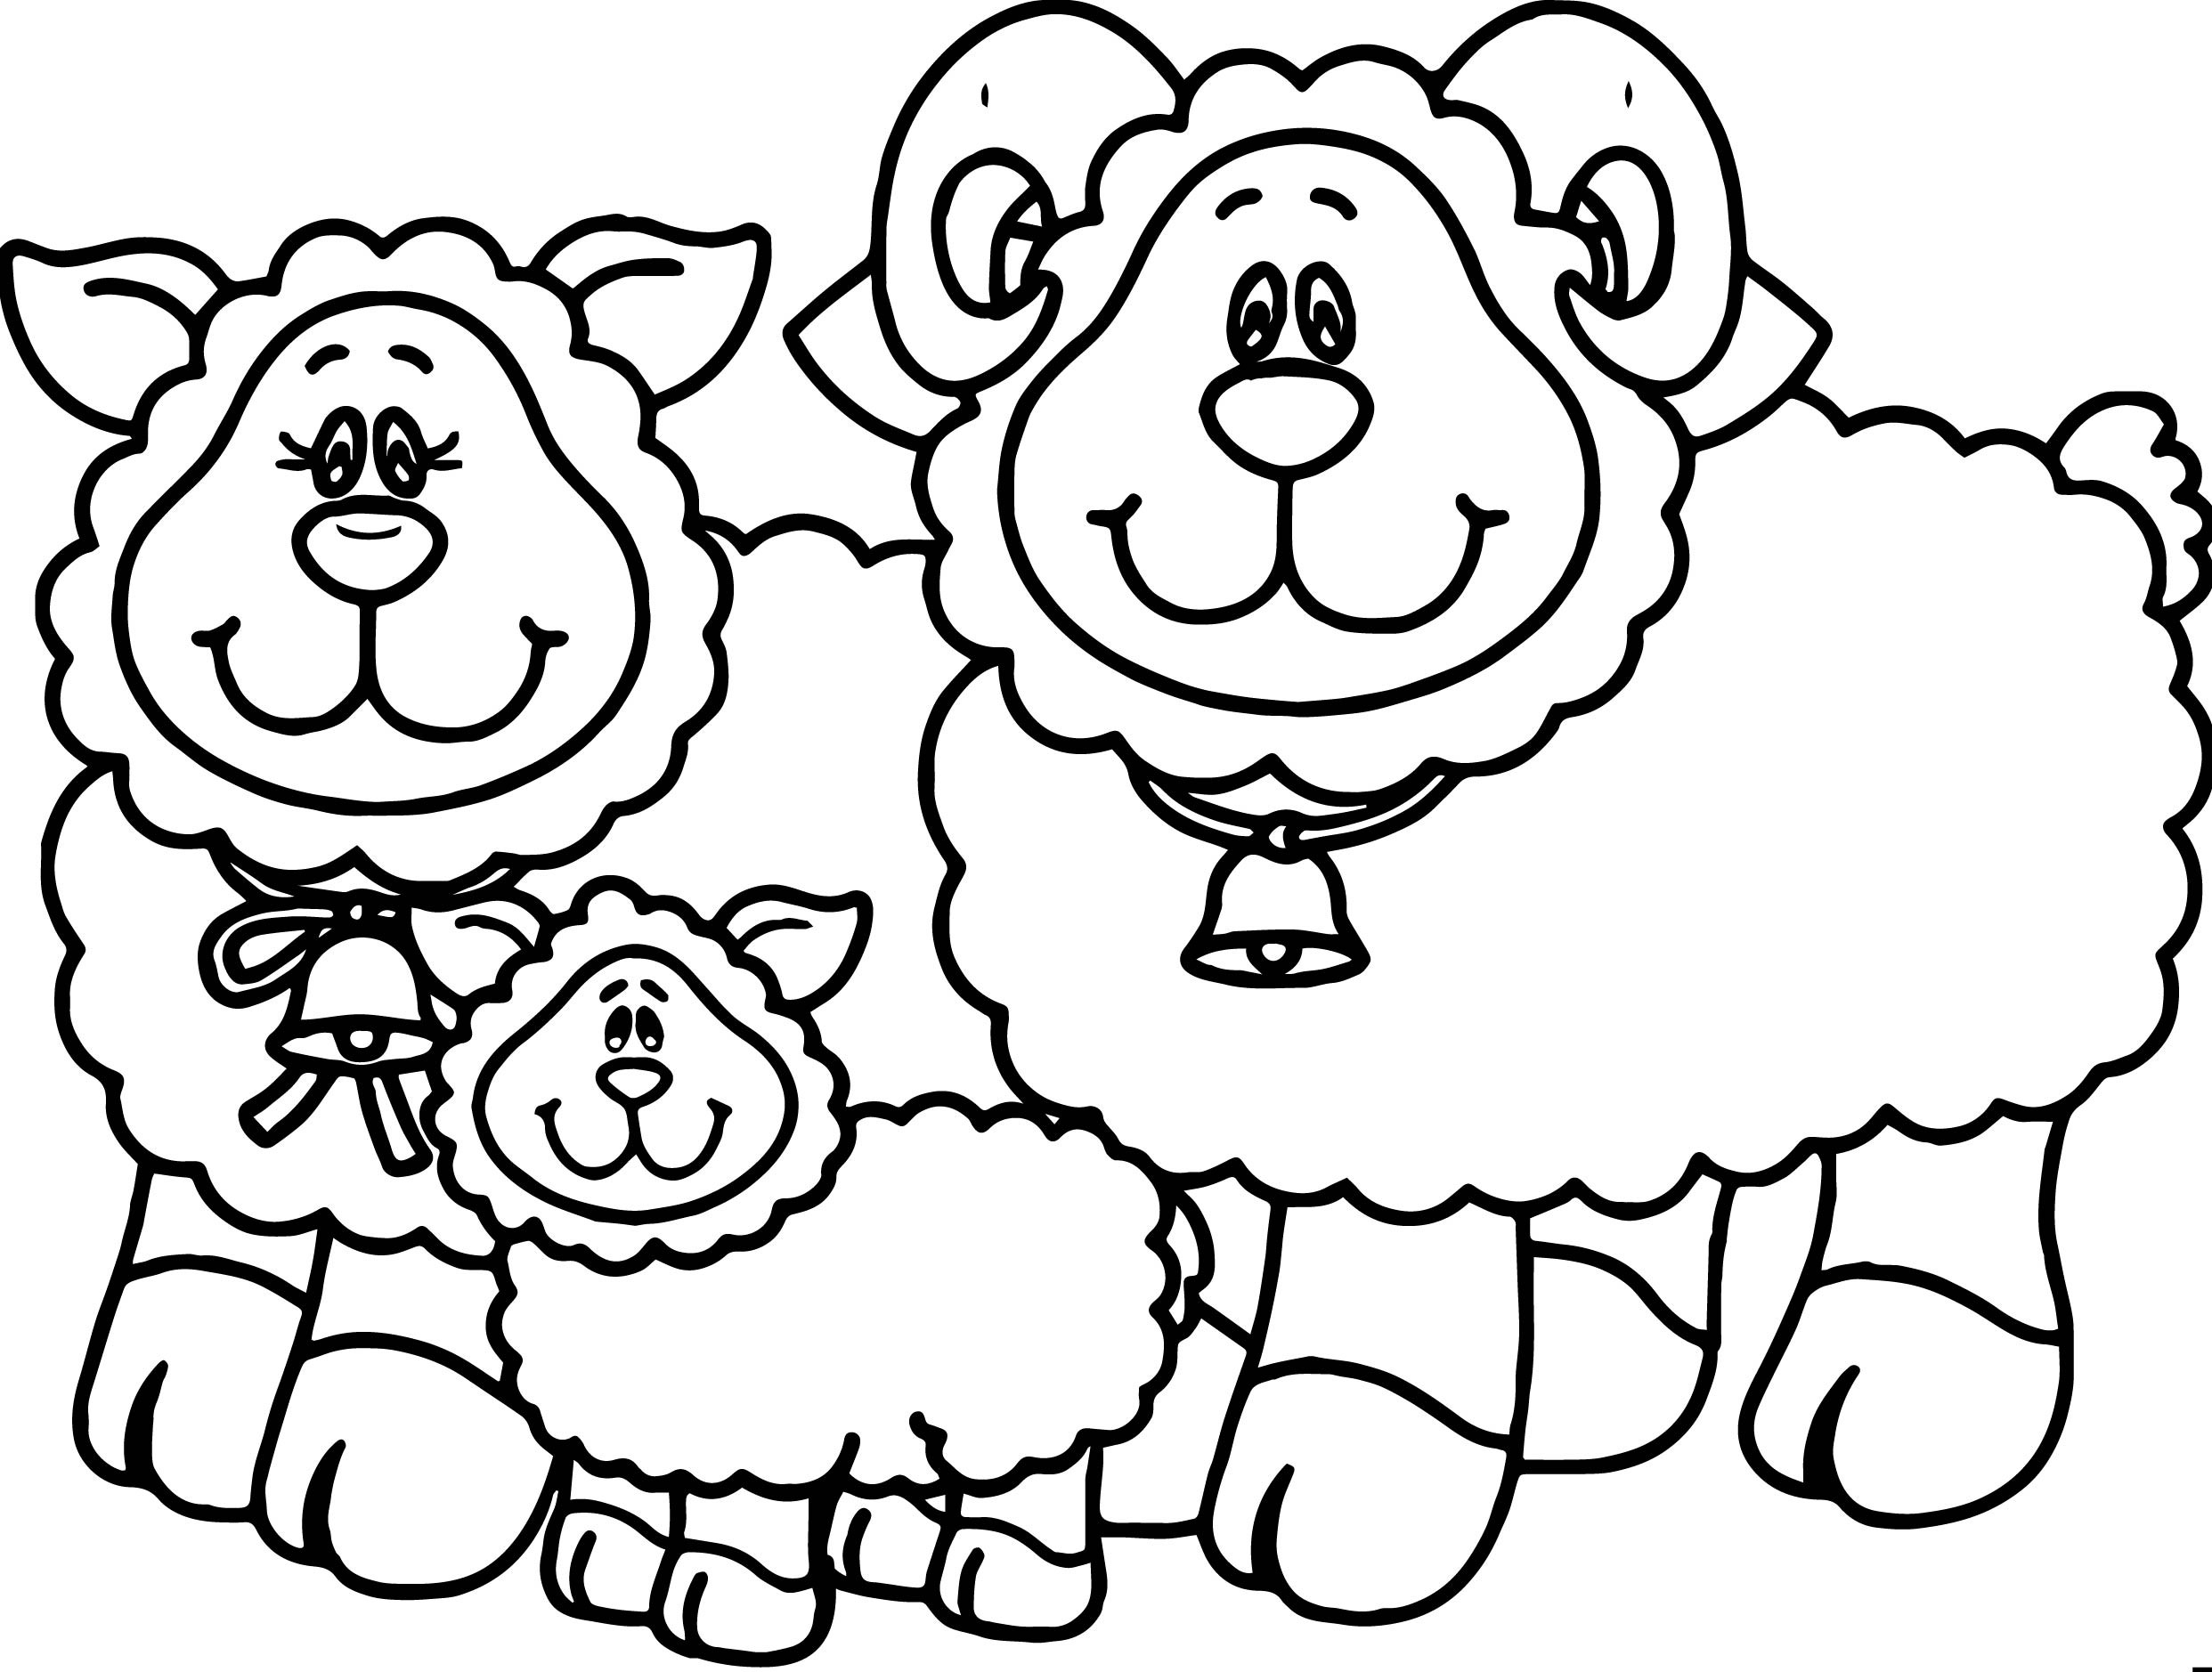 2484x1878 Brilliant Shaunep Coloring Pages Colouring Free To Print